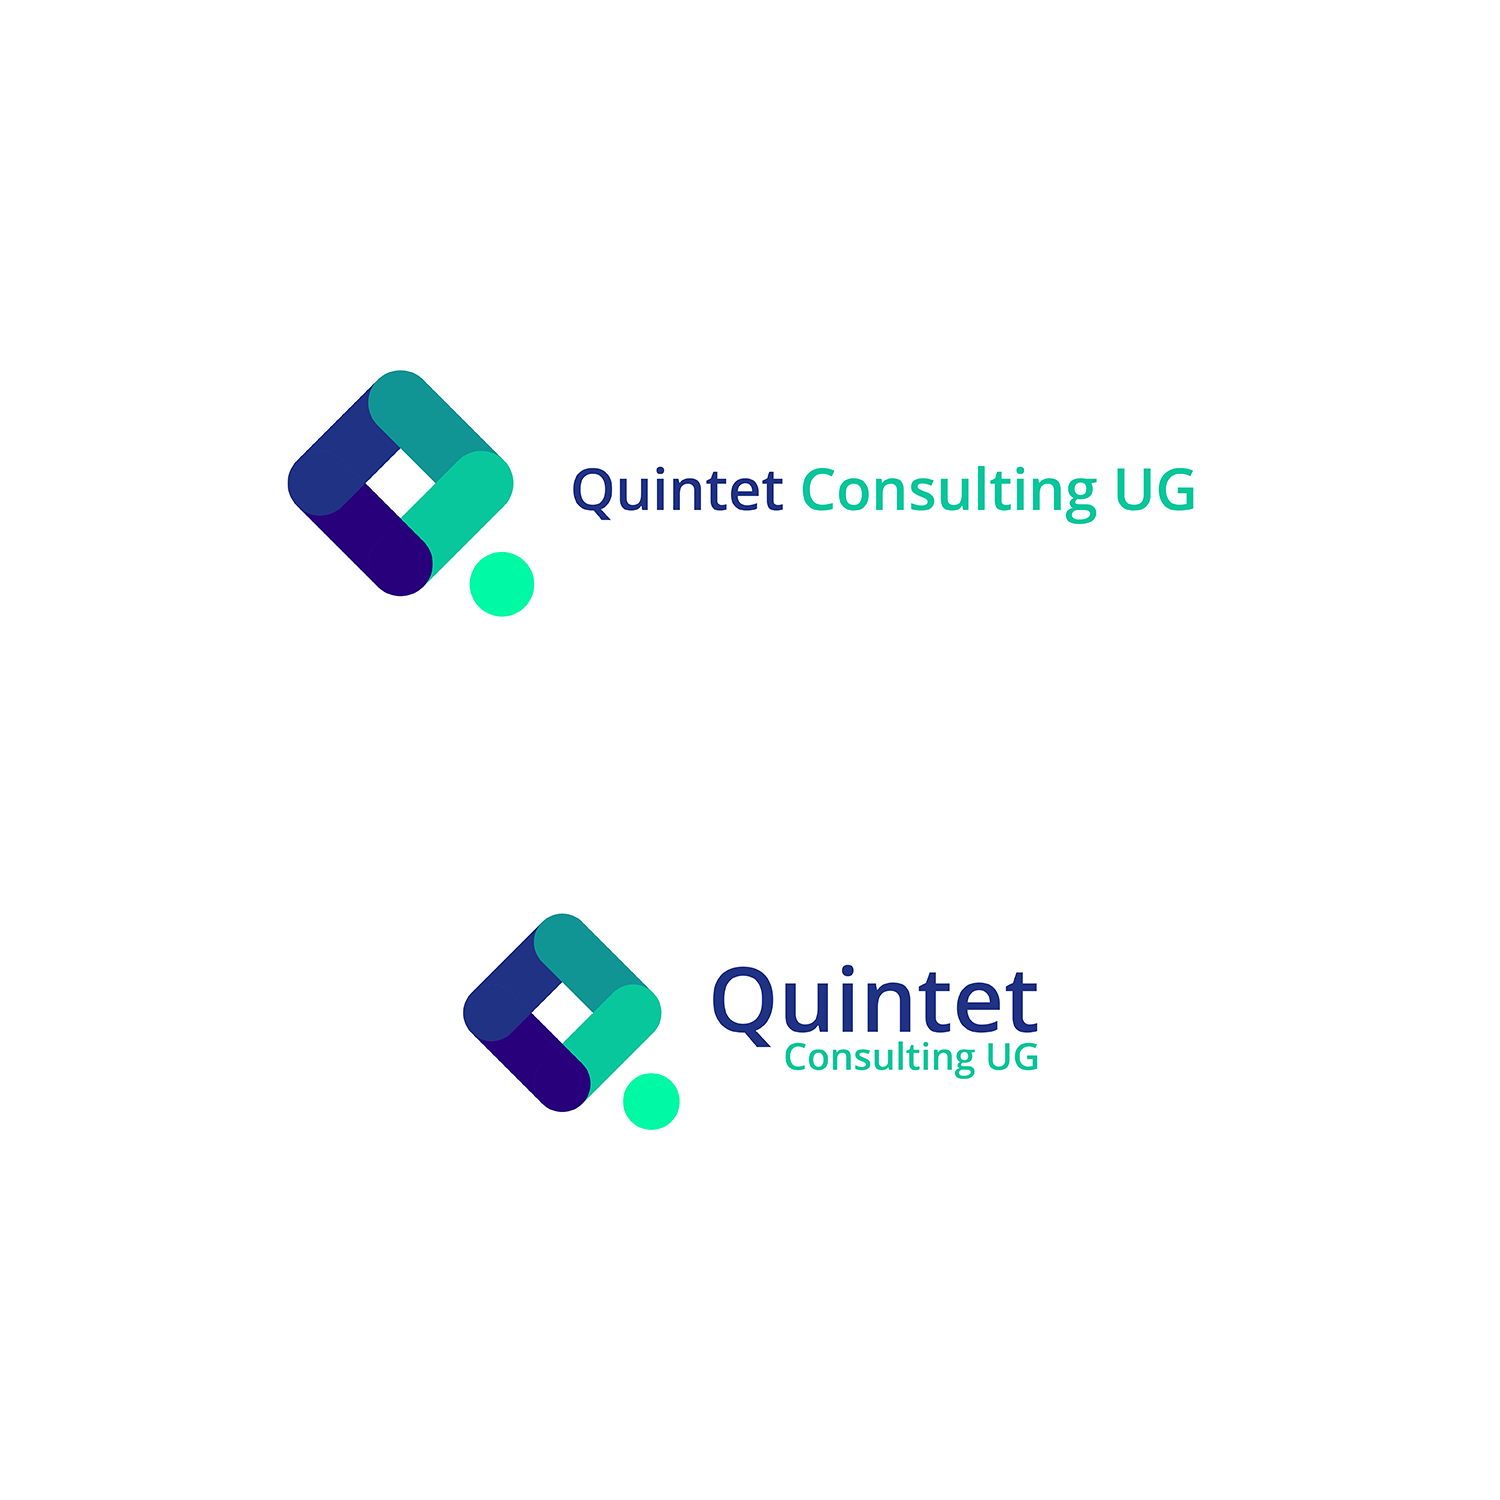 Elegant serious software development logo and business card design elegant serious software development logo and business card design for quintet consulting ug haftungsbeschraenkt in germany design 17691245 reheart Images